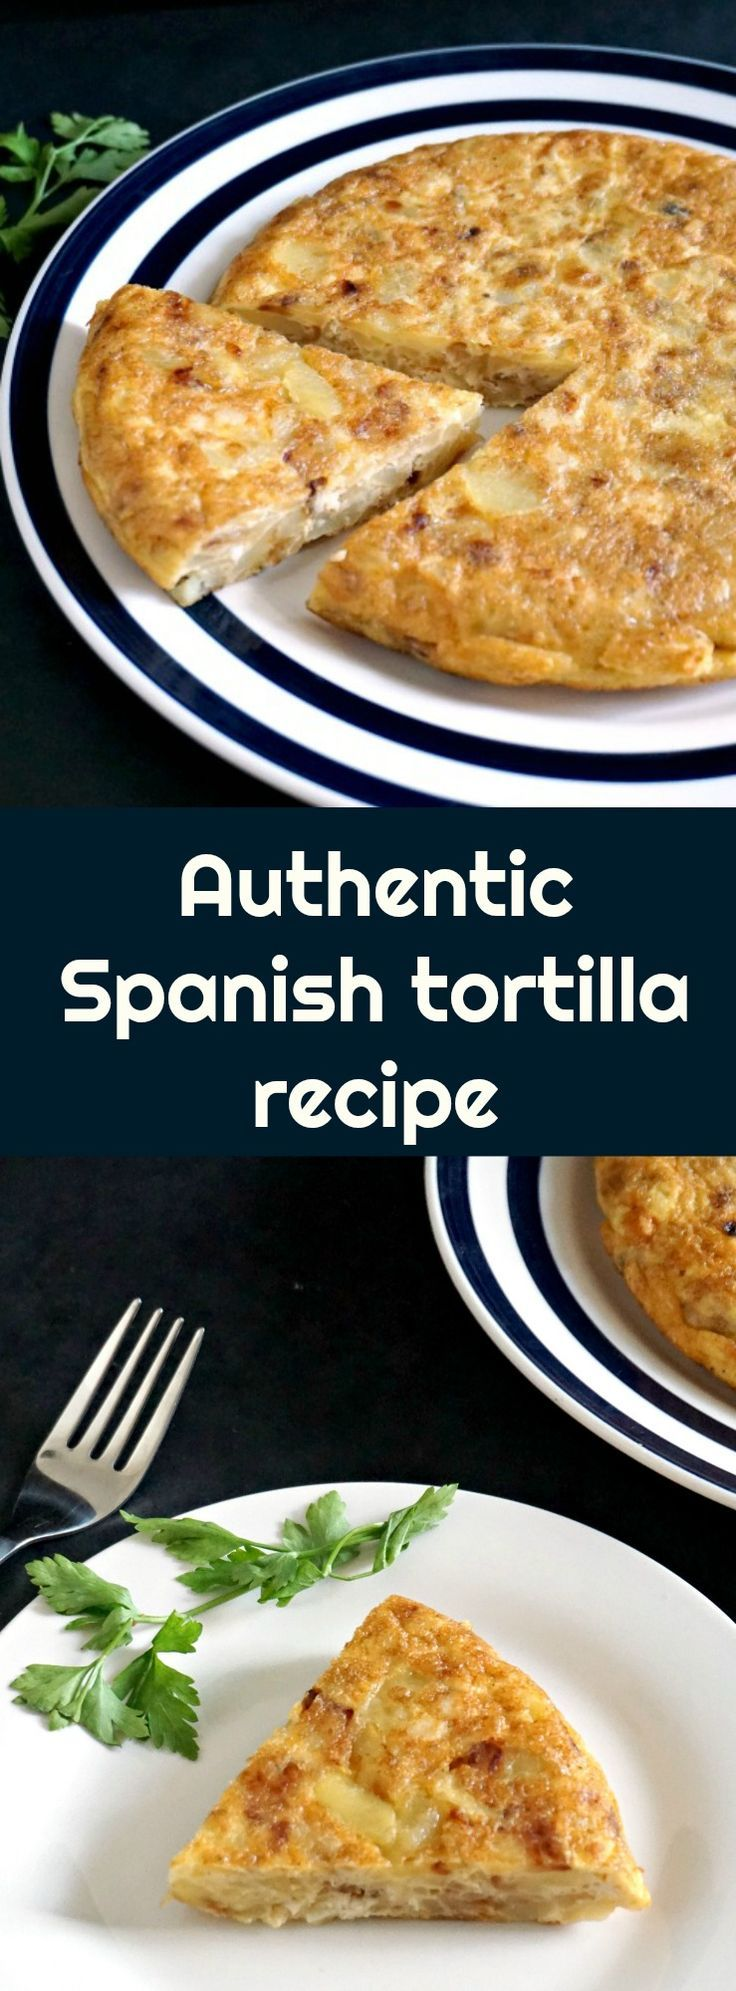 This Authentic Spanish tortilla recipe, the very famous Tortilla española is the most delicious potato omelette, and one of many amazing tapas that the Spanish cuisine is well known for.